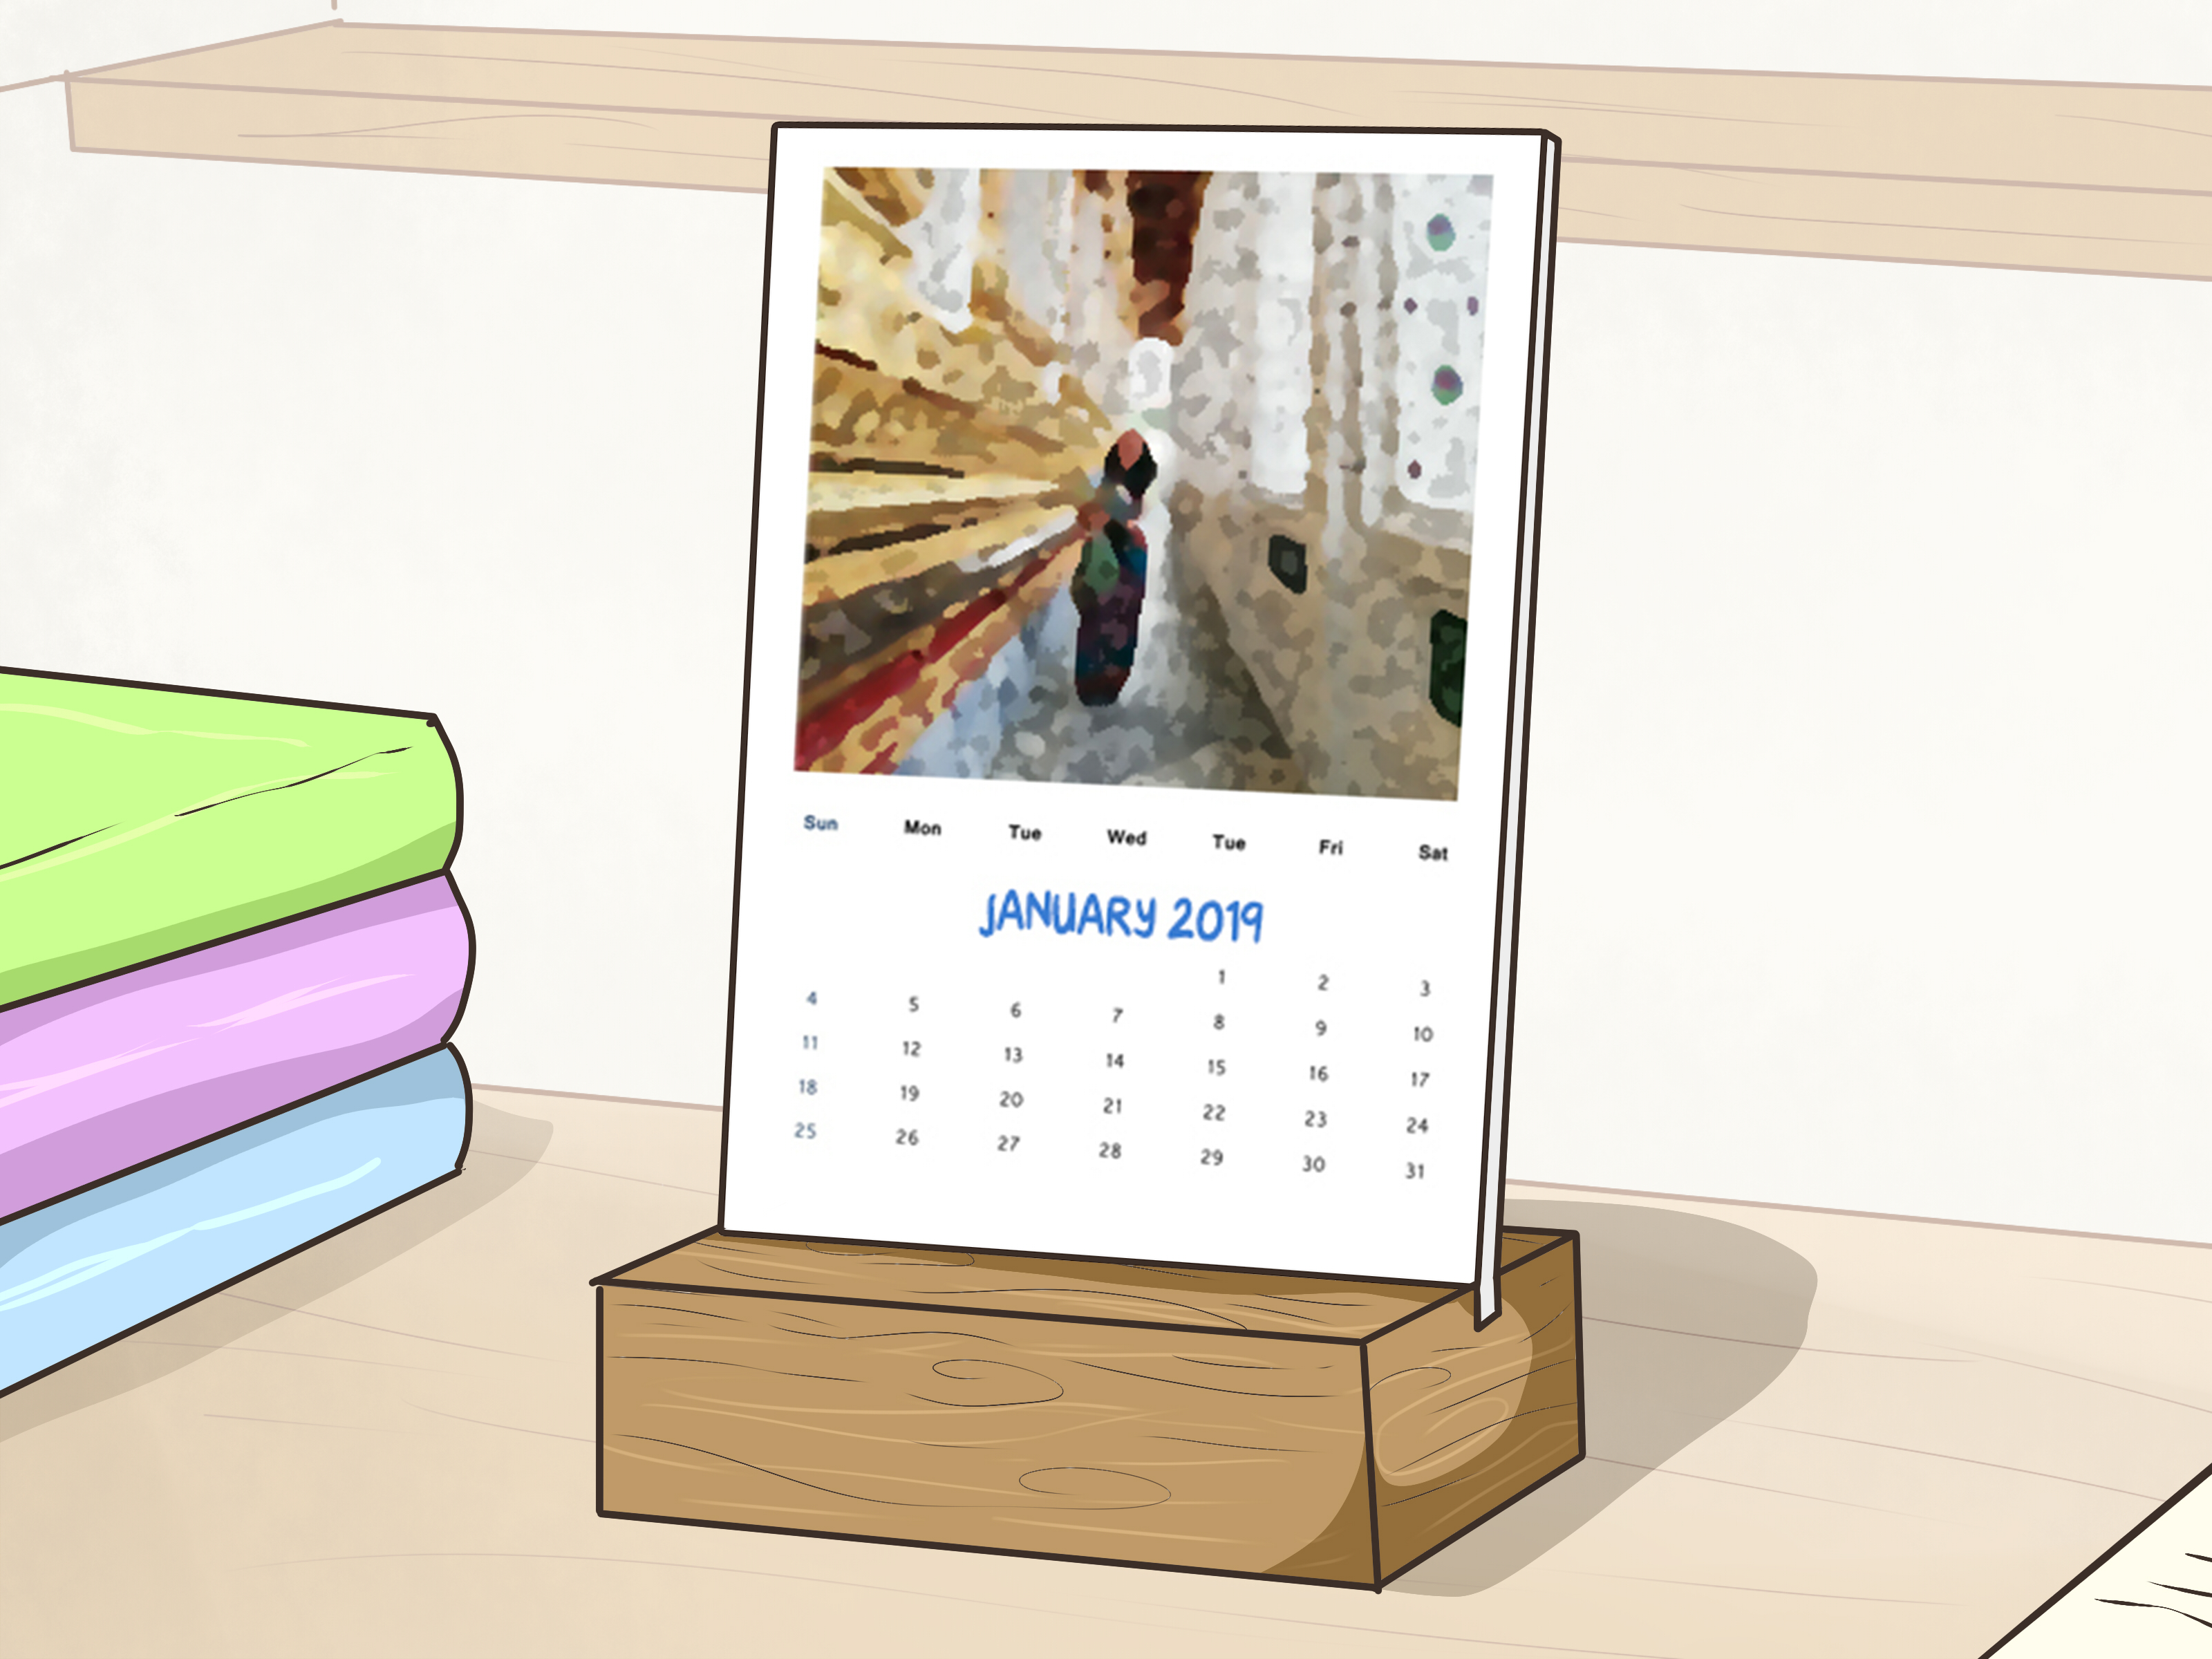 How To Make A Desk Calendar With Pictures